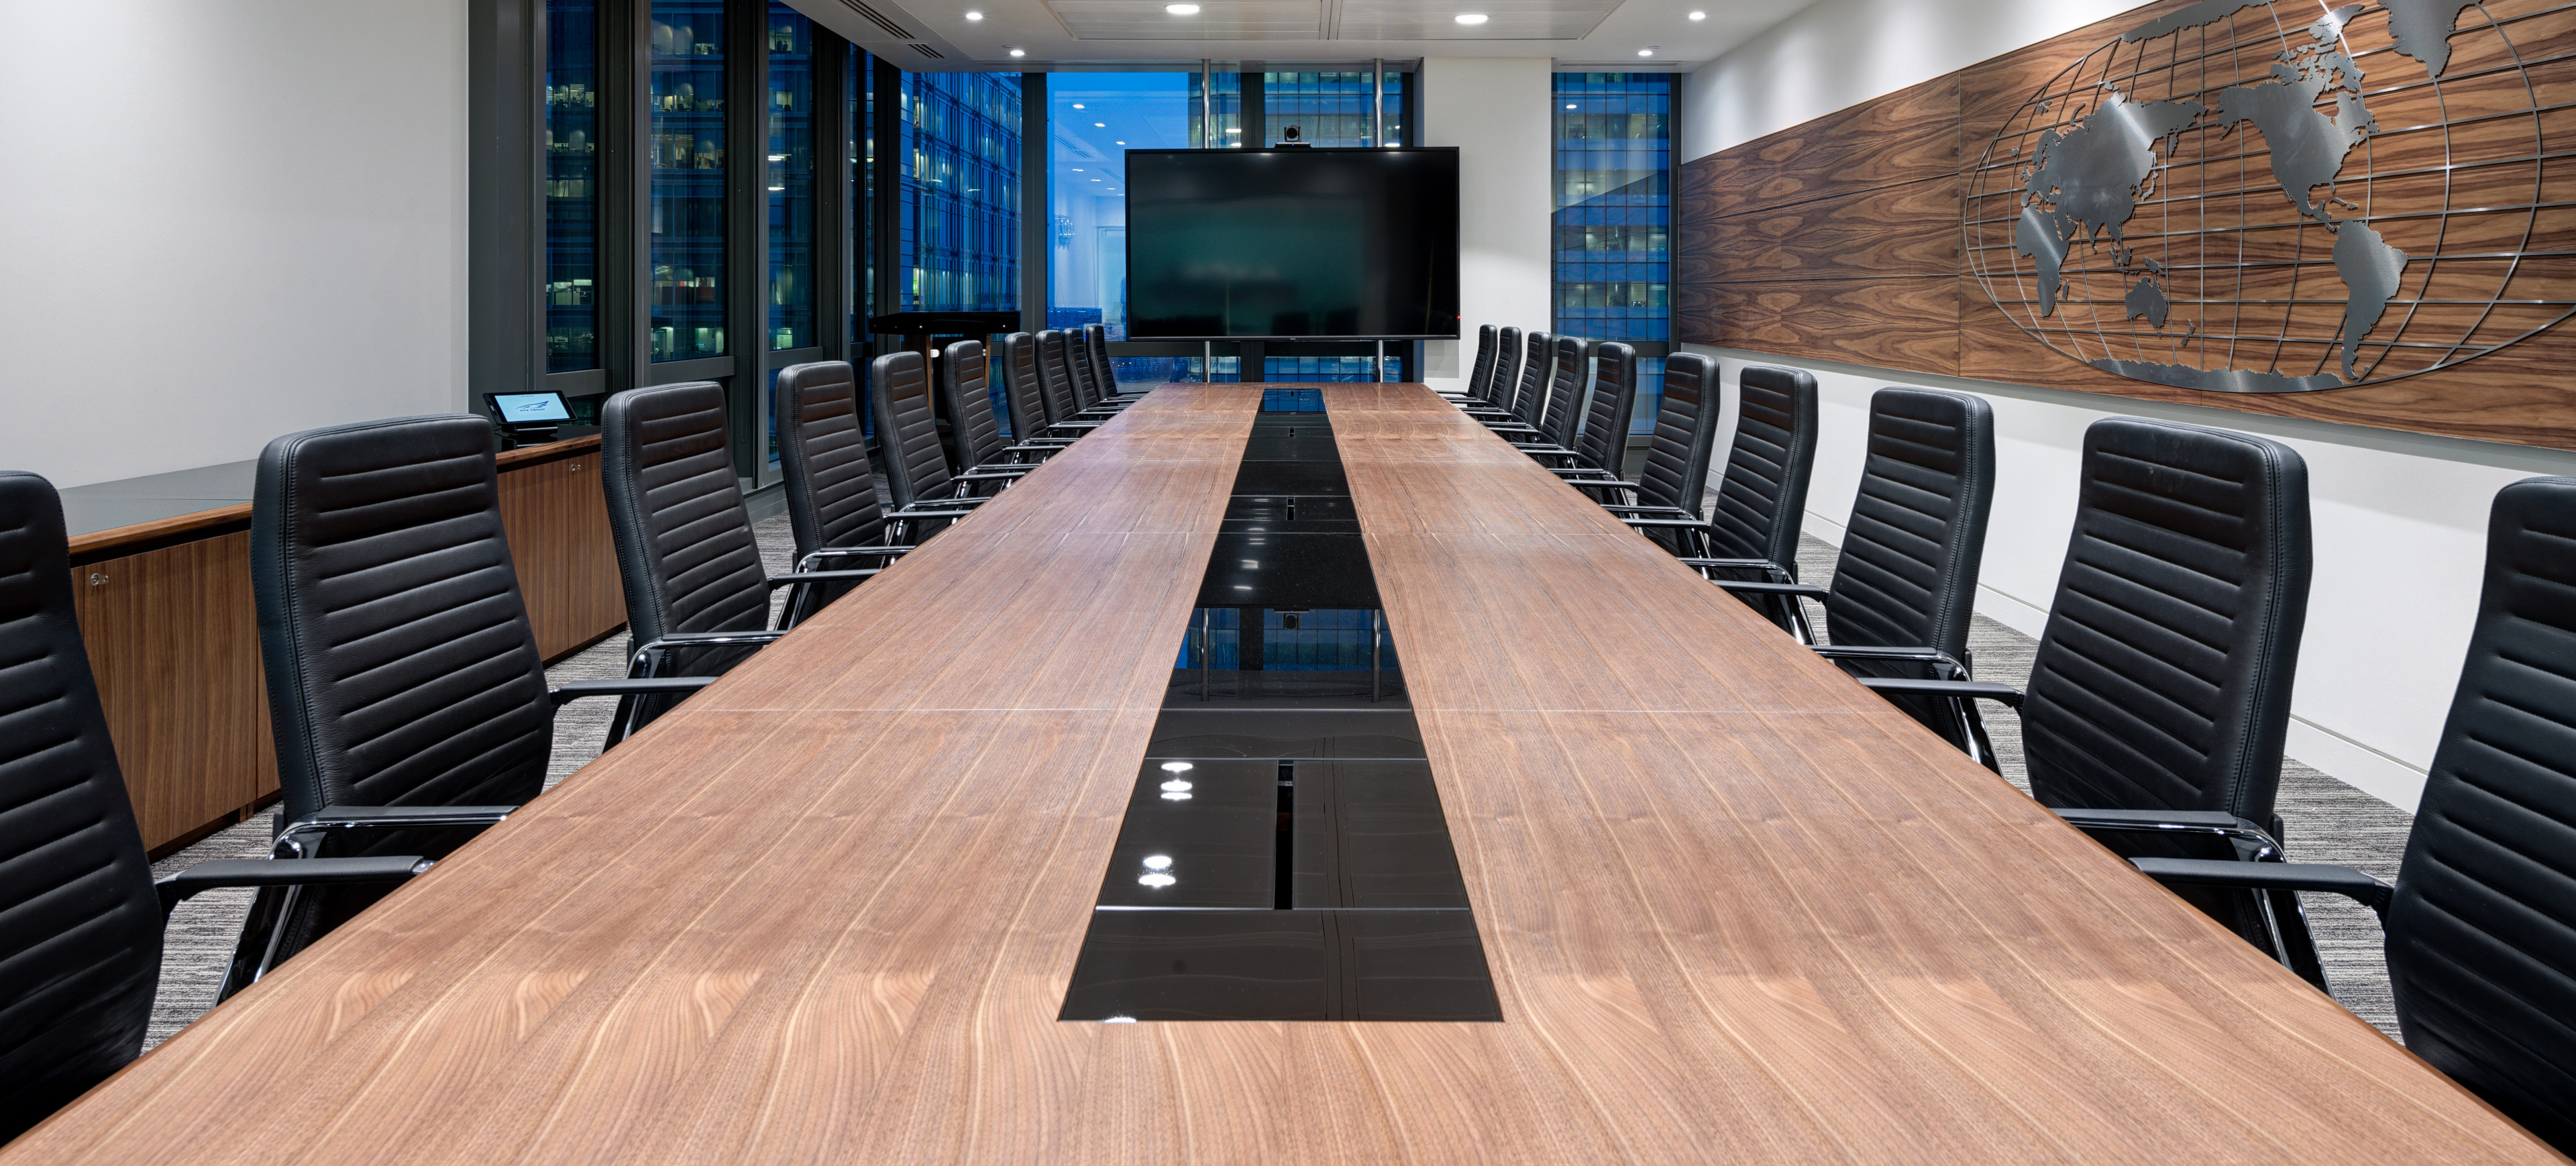 HK Walnut and glass boardroom table